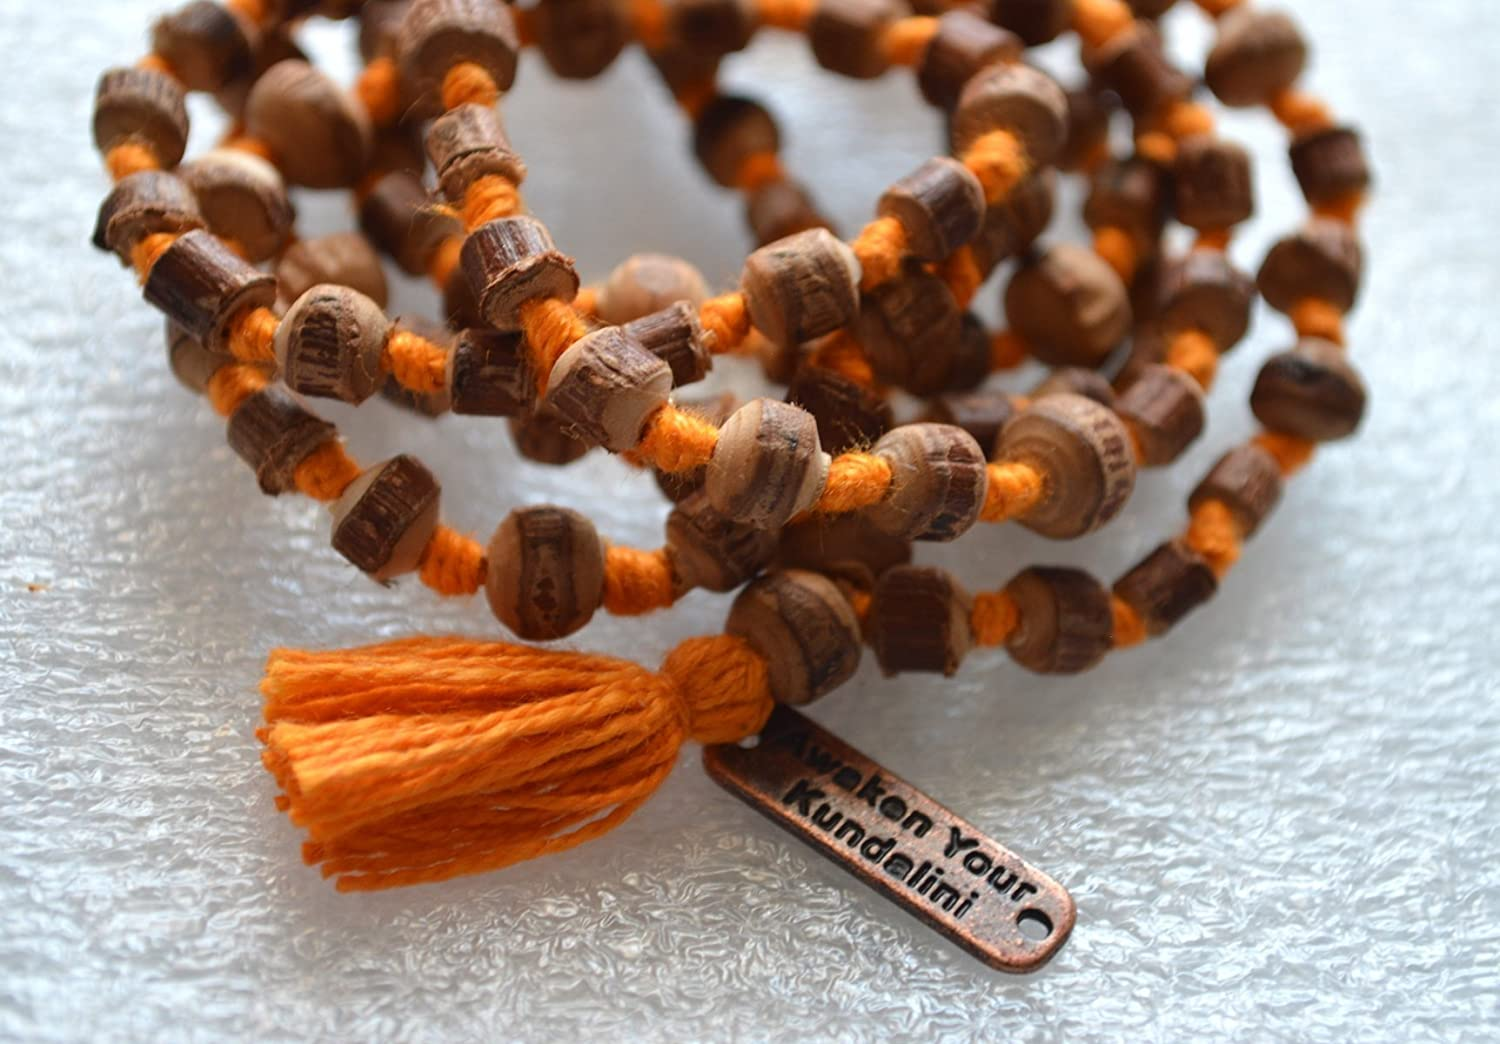 Natural and Raw Tulsi mala beads necklace - purest form - Energized hand knotted Holy Basil 108+1 beads w/Free Velvet Rosary Pouch - Natural RAW CUT ROUGH Prayer beads for chanting mantra - US Seller